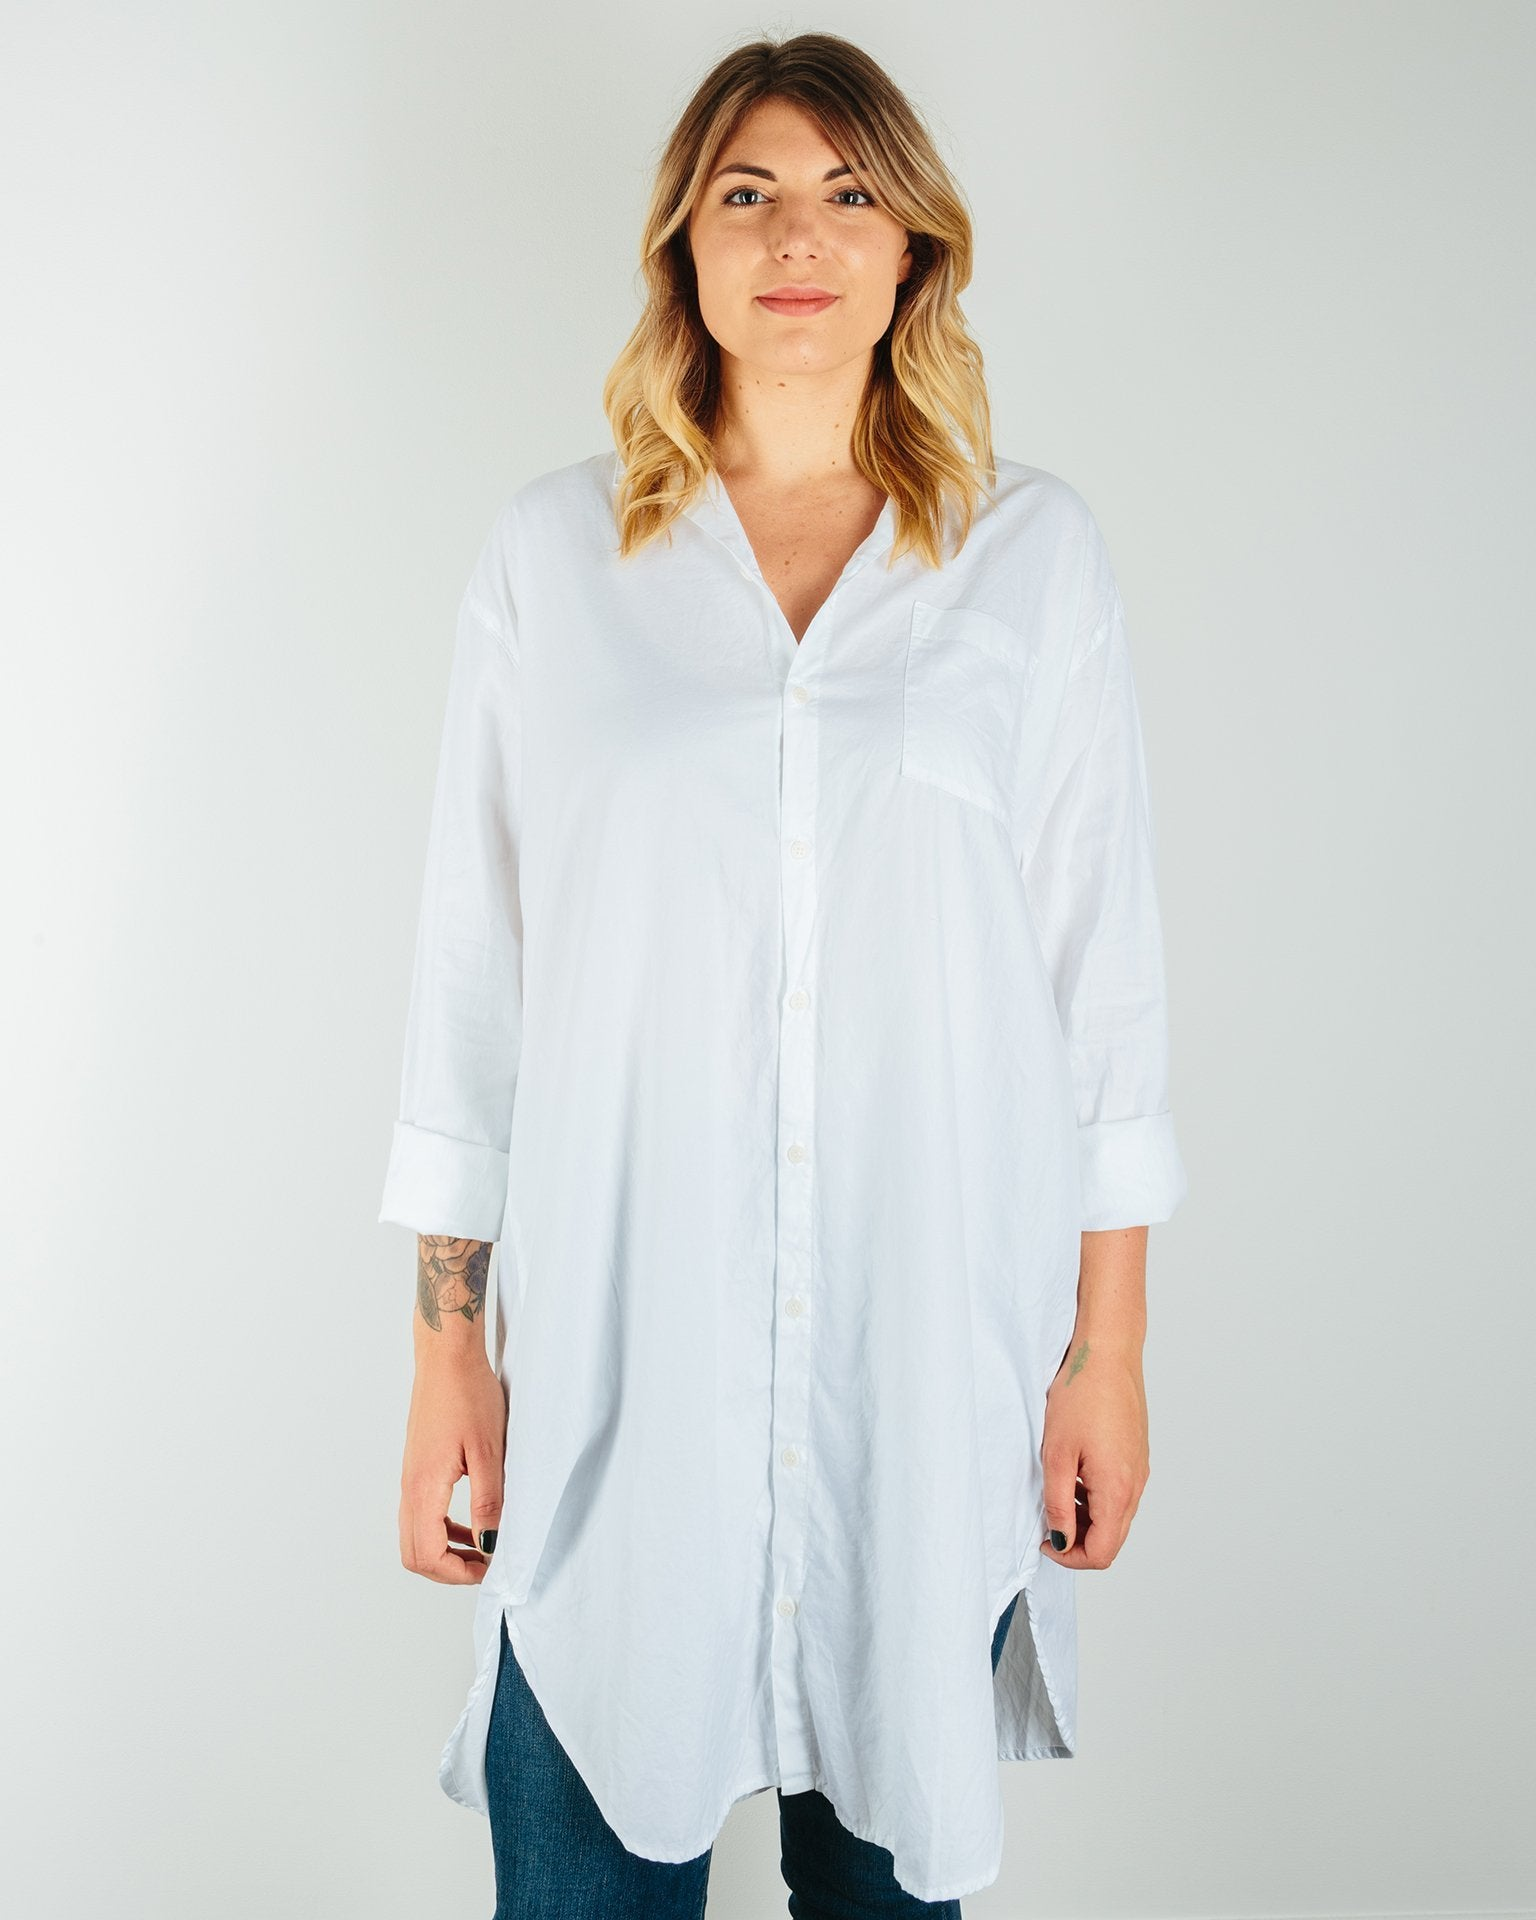 CP Shades Clothing White / XS Mari Oversized Shirtdress in Cotton Twill